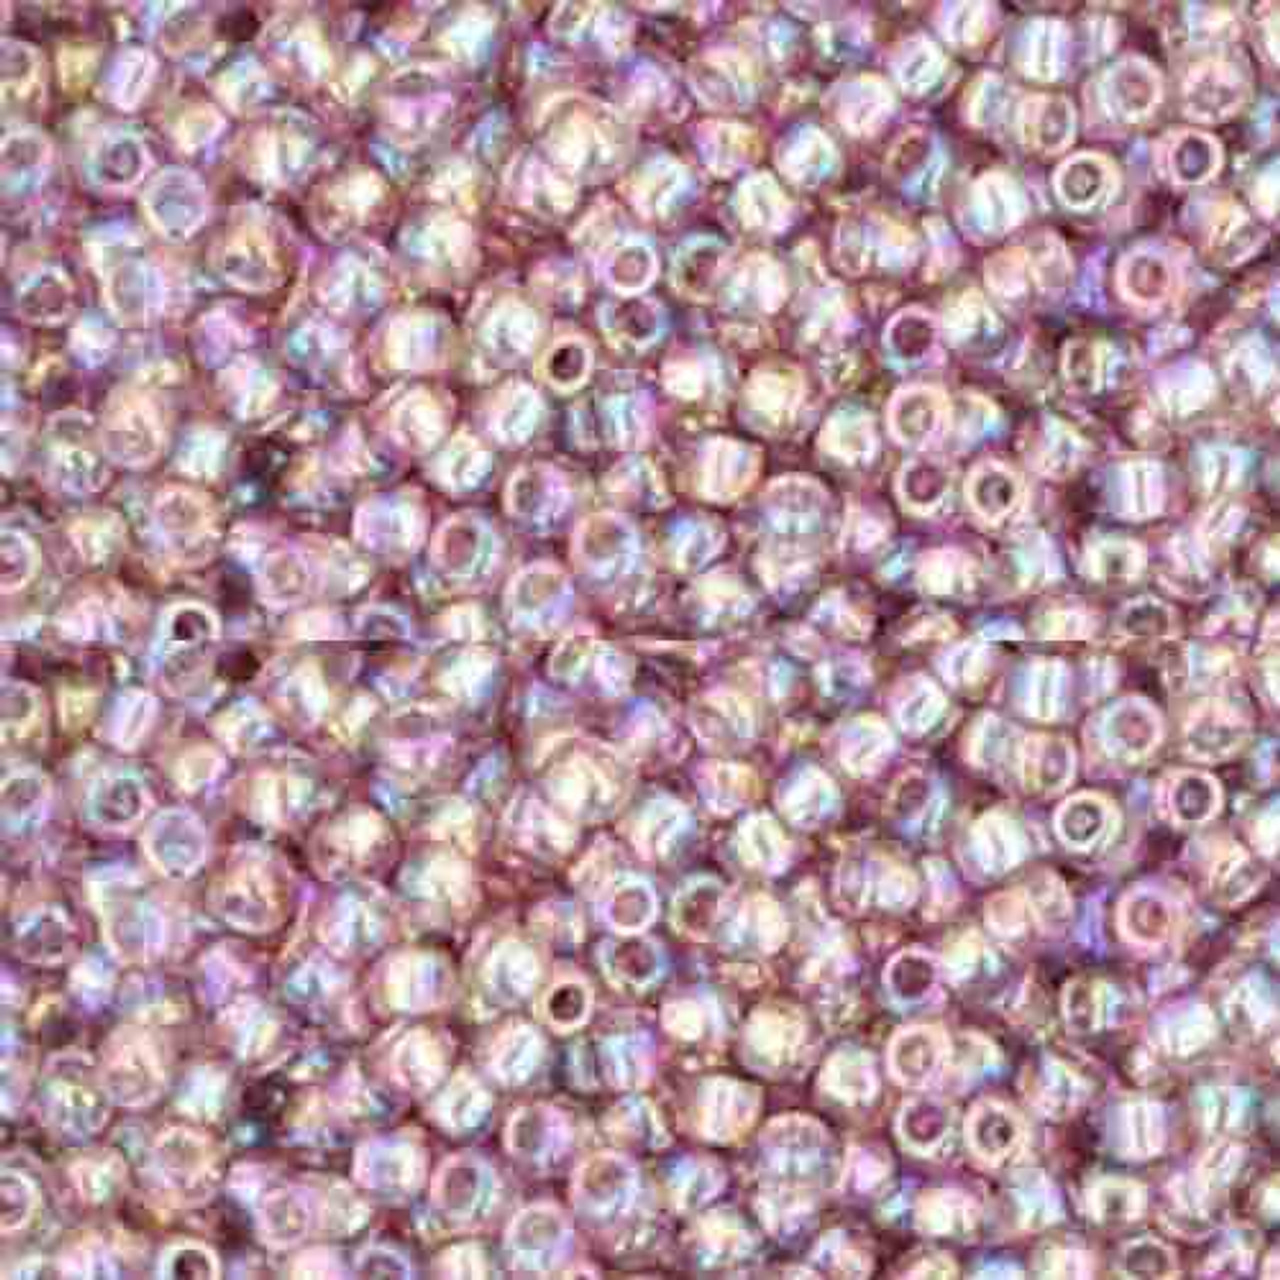 Round 80 #121 /'Opaque Lustered White/' Toho Seed Beads 8 Grams